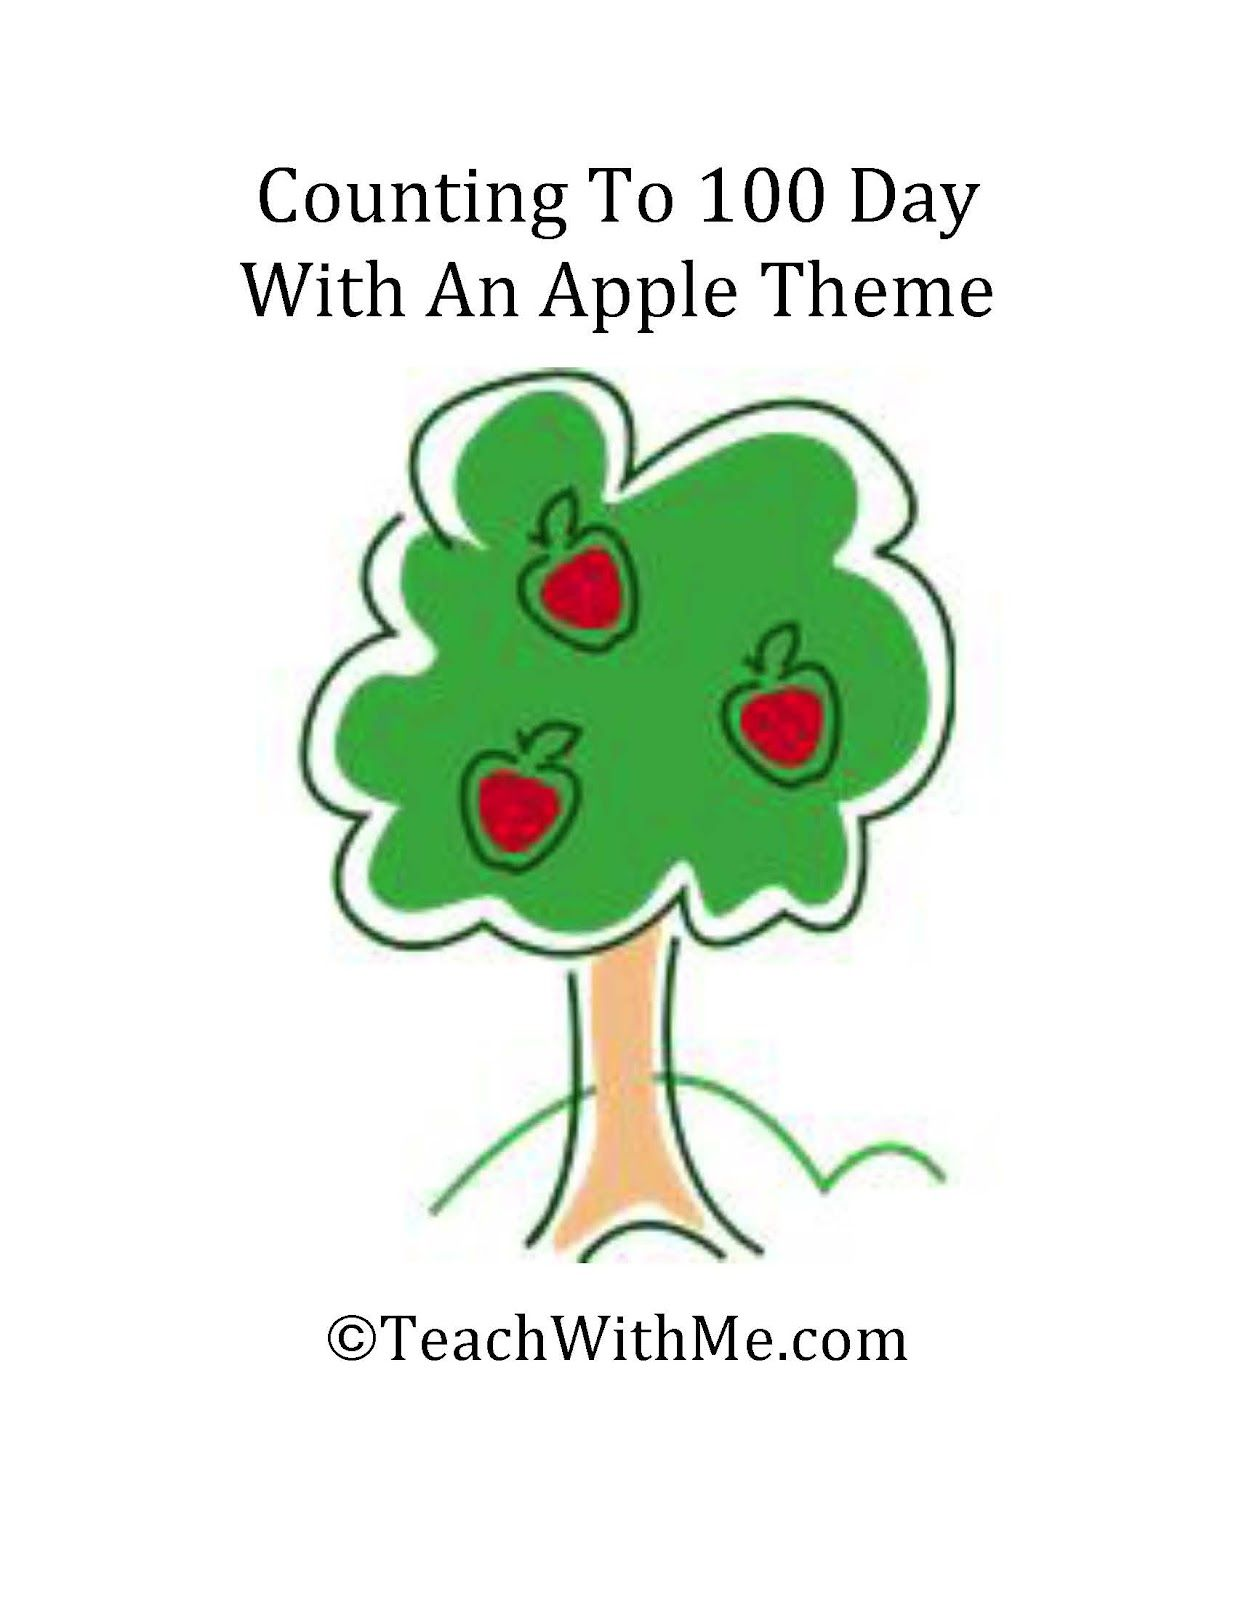 Counting To 100 Day With An Apple Theme